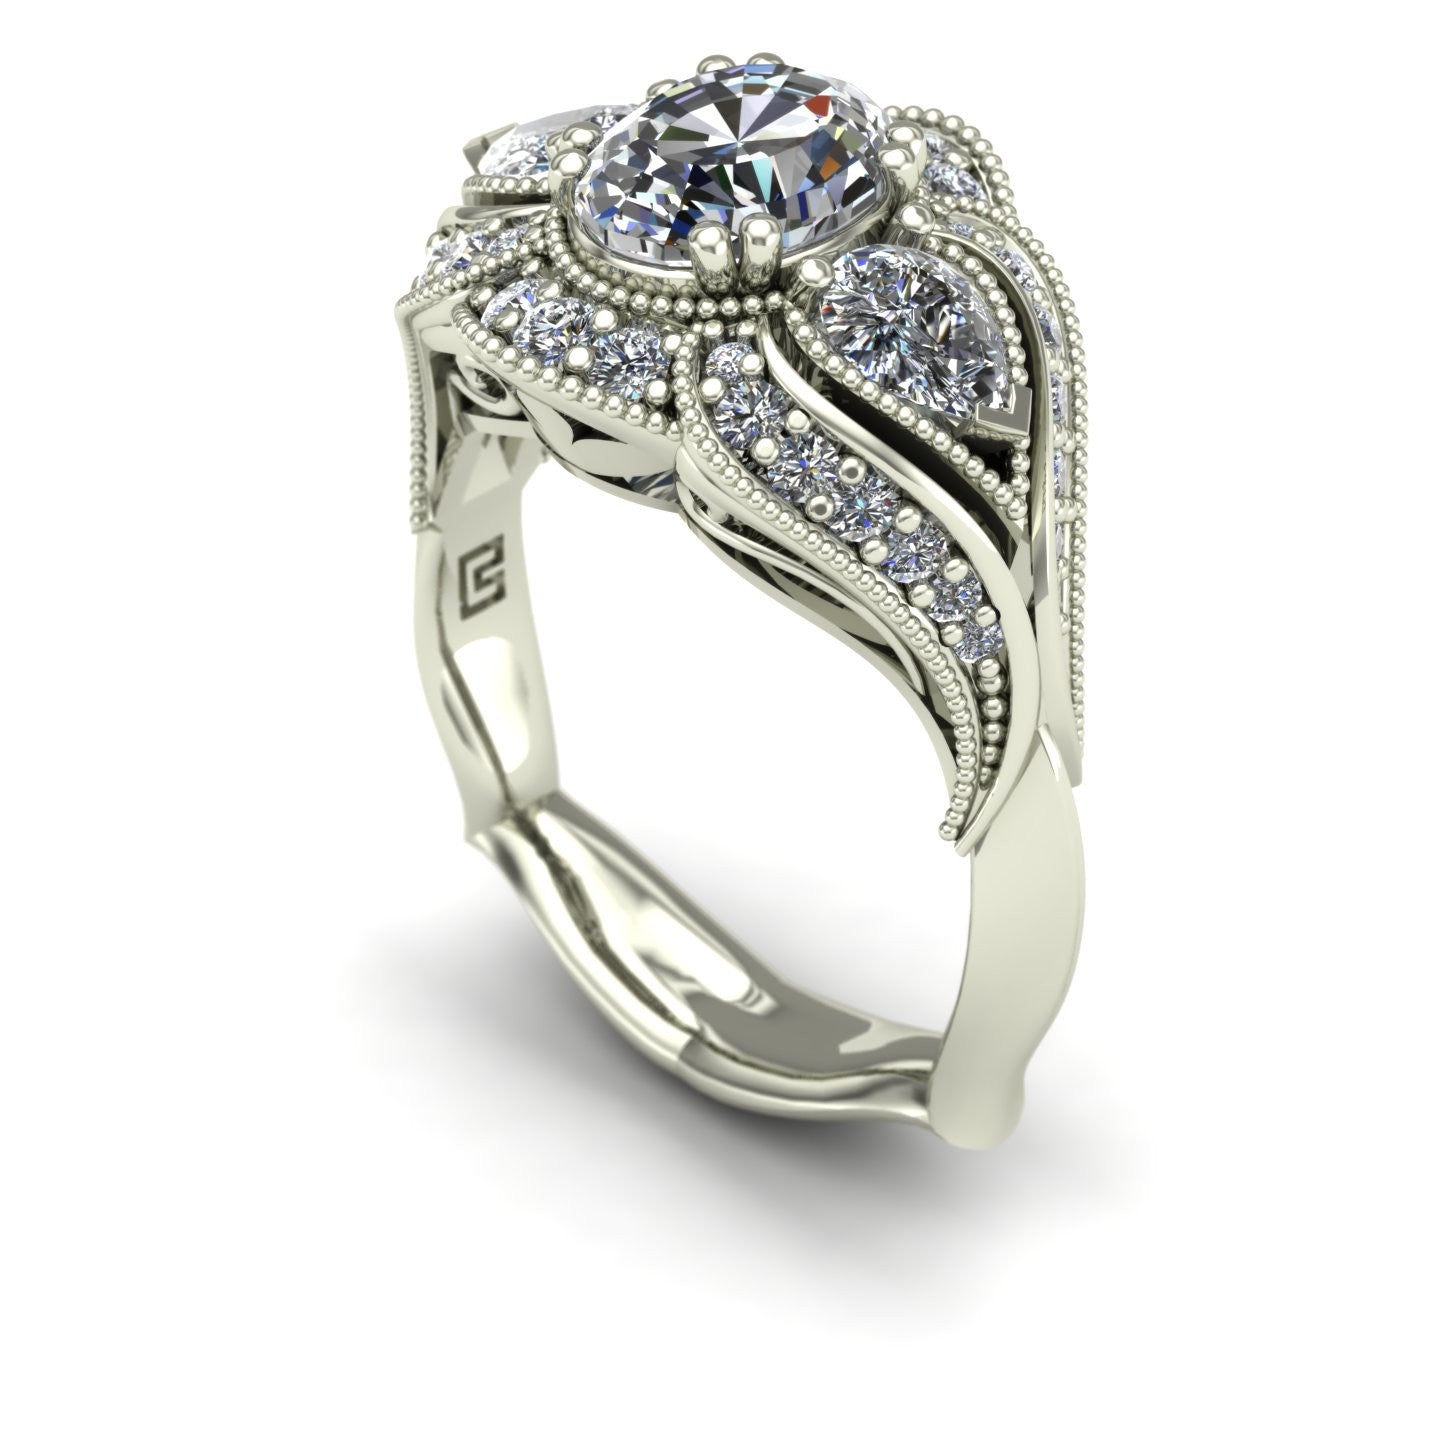 Oval diamond engagement ring in 18k white gold